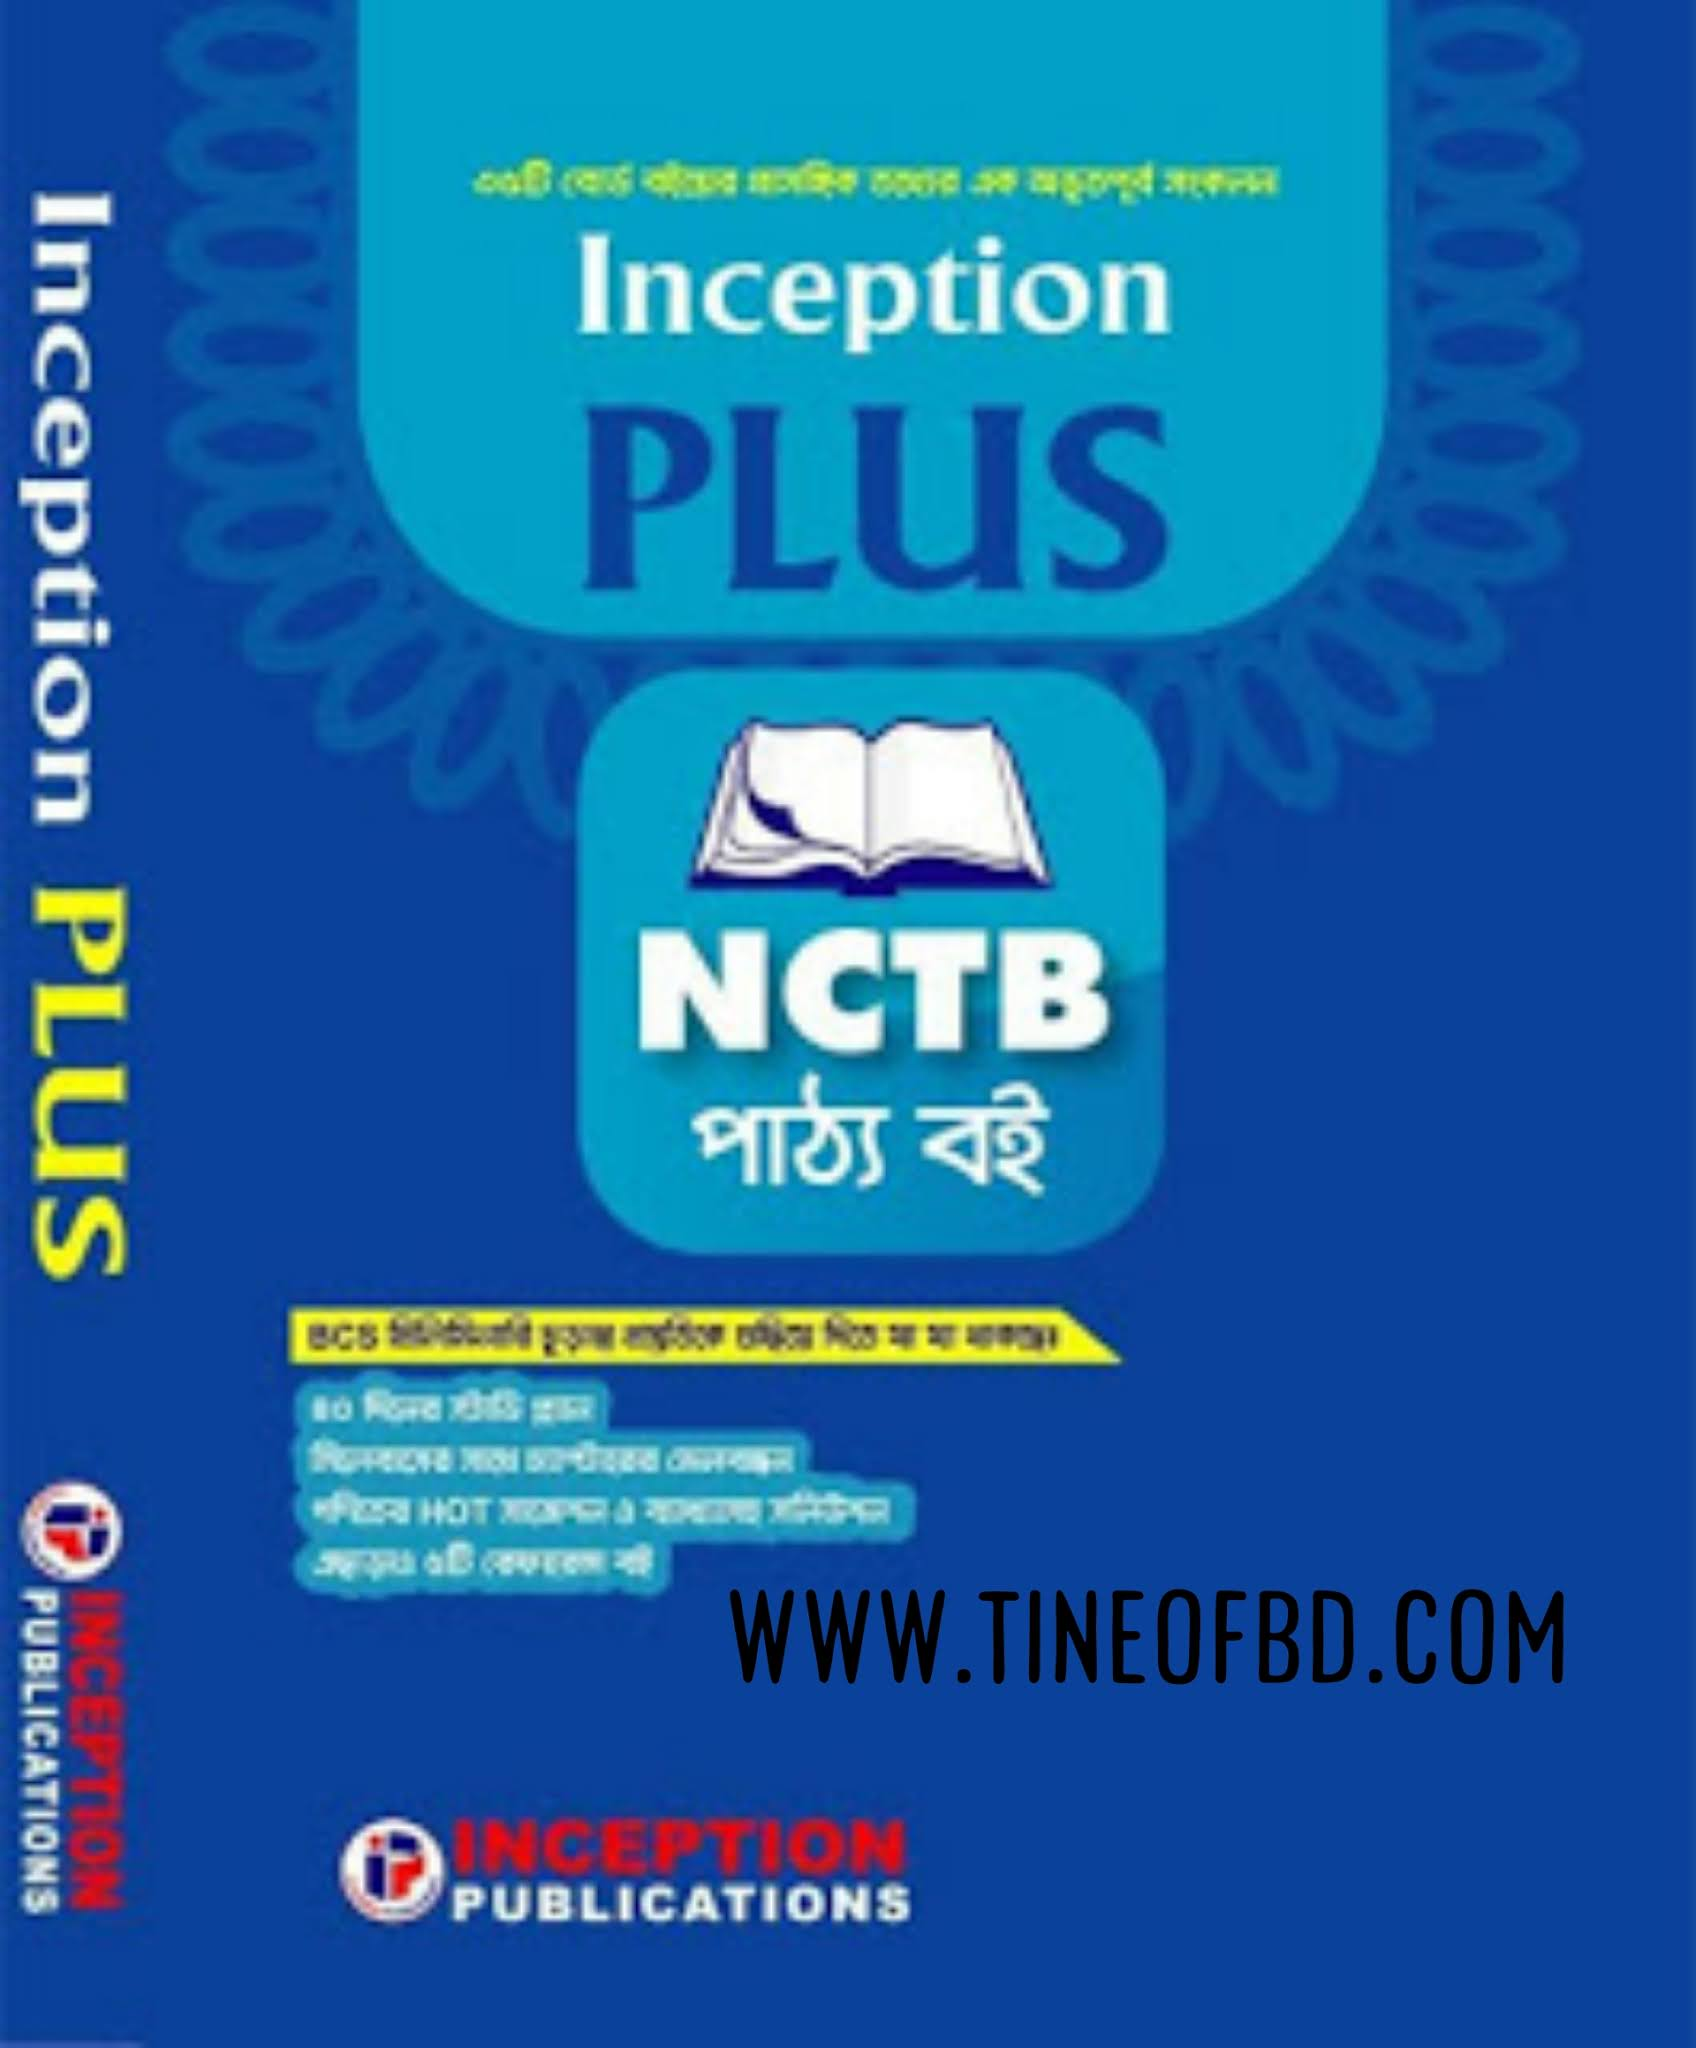 Inception Plus book free pdf download link, Inception Plus book free pdf, Inception Plus book, Inception Plus book free pdf download